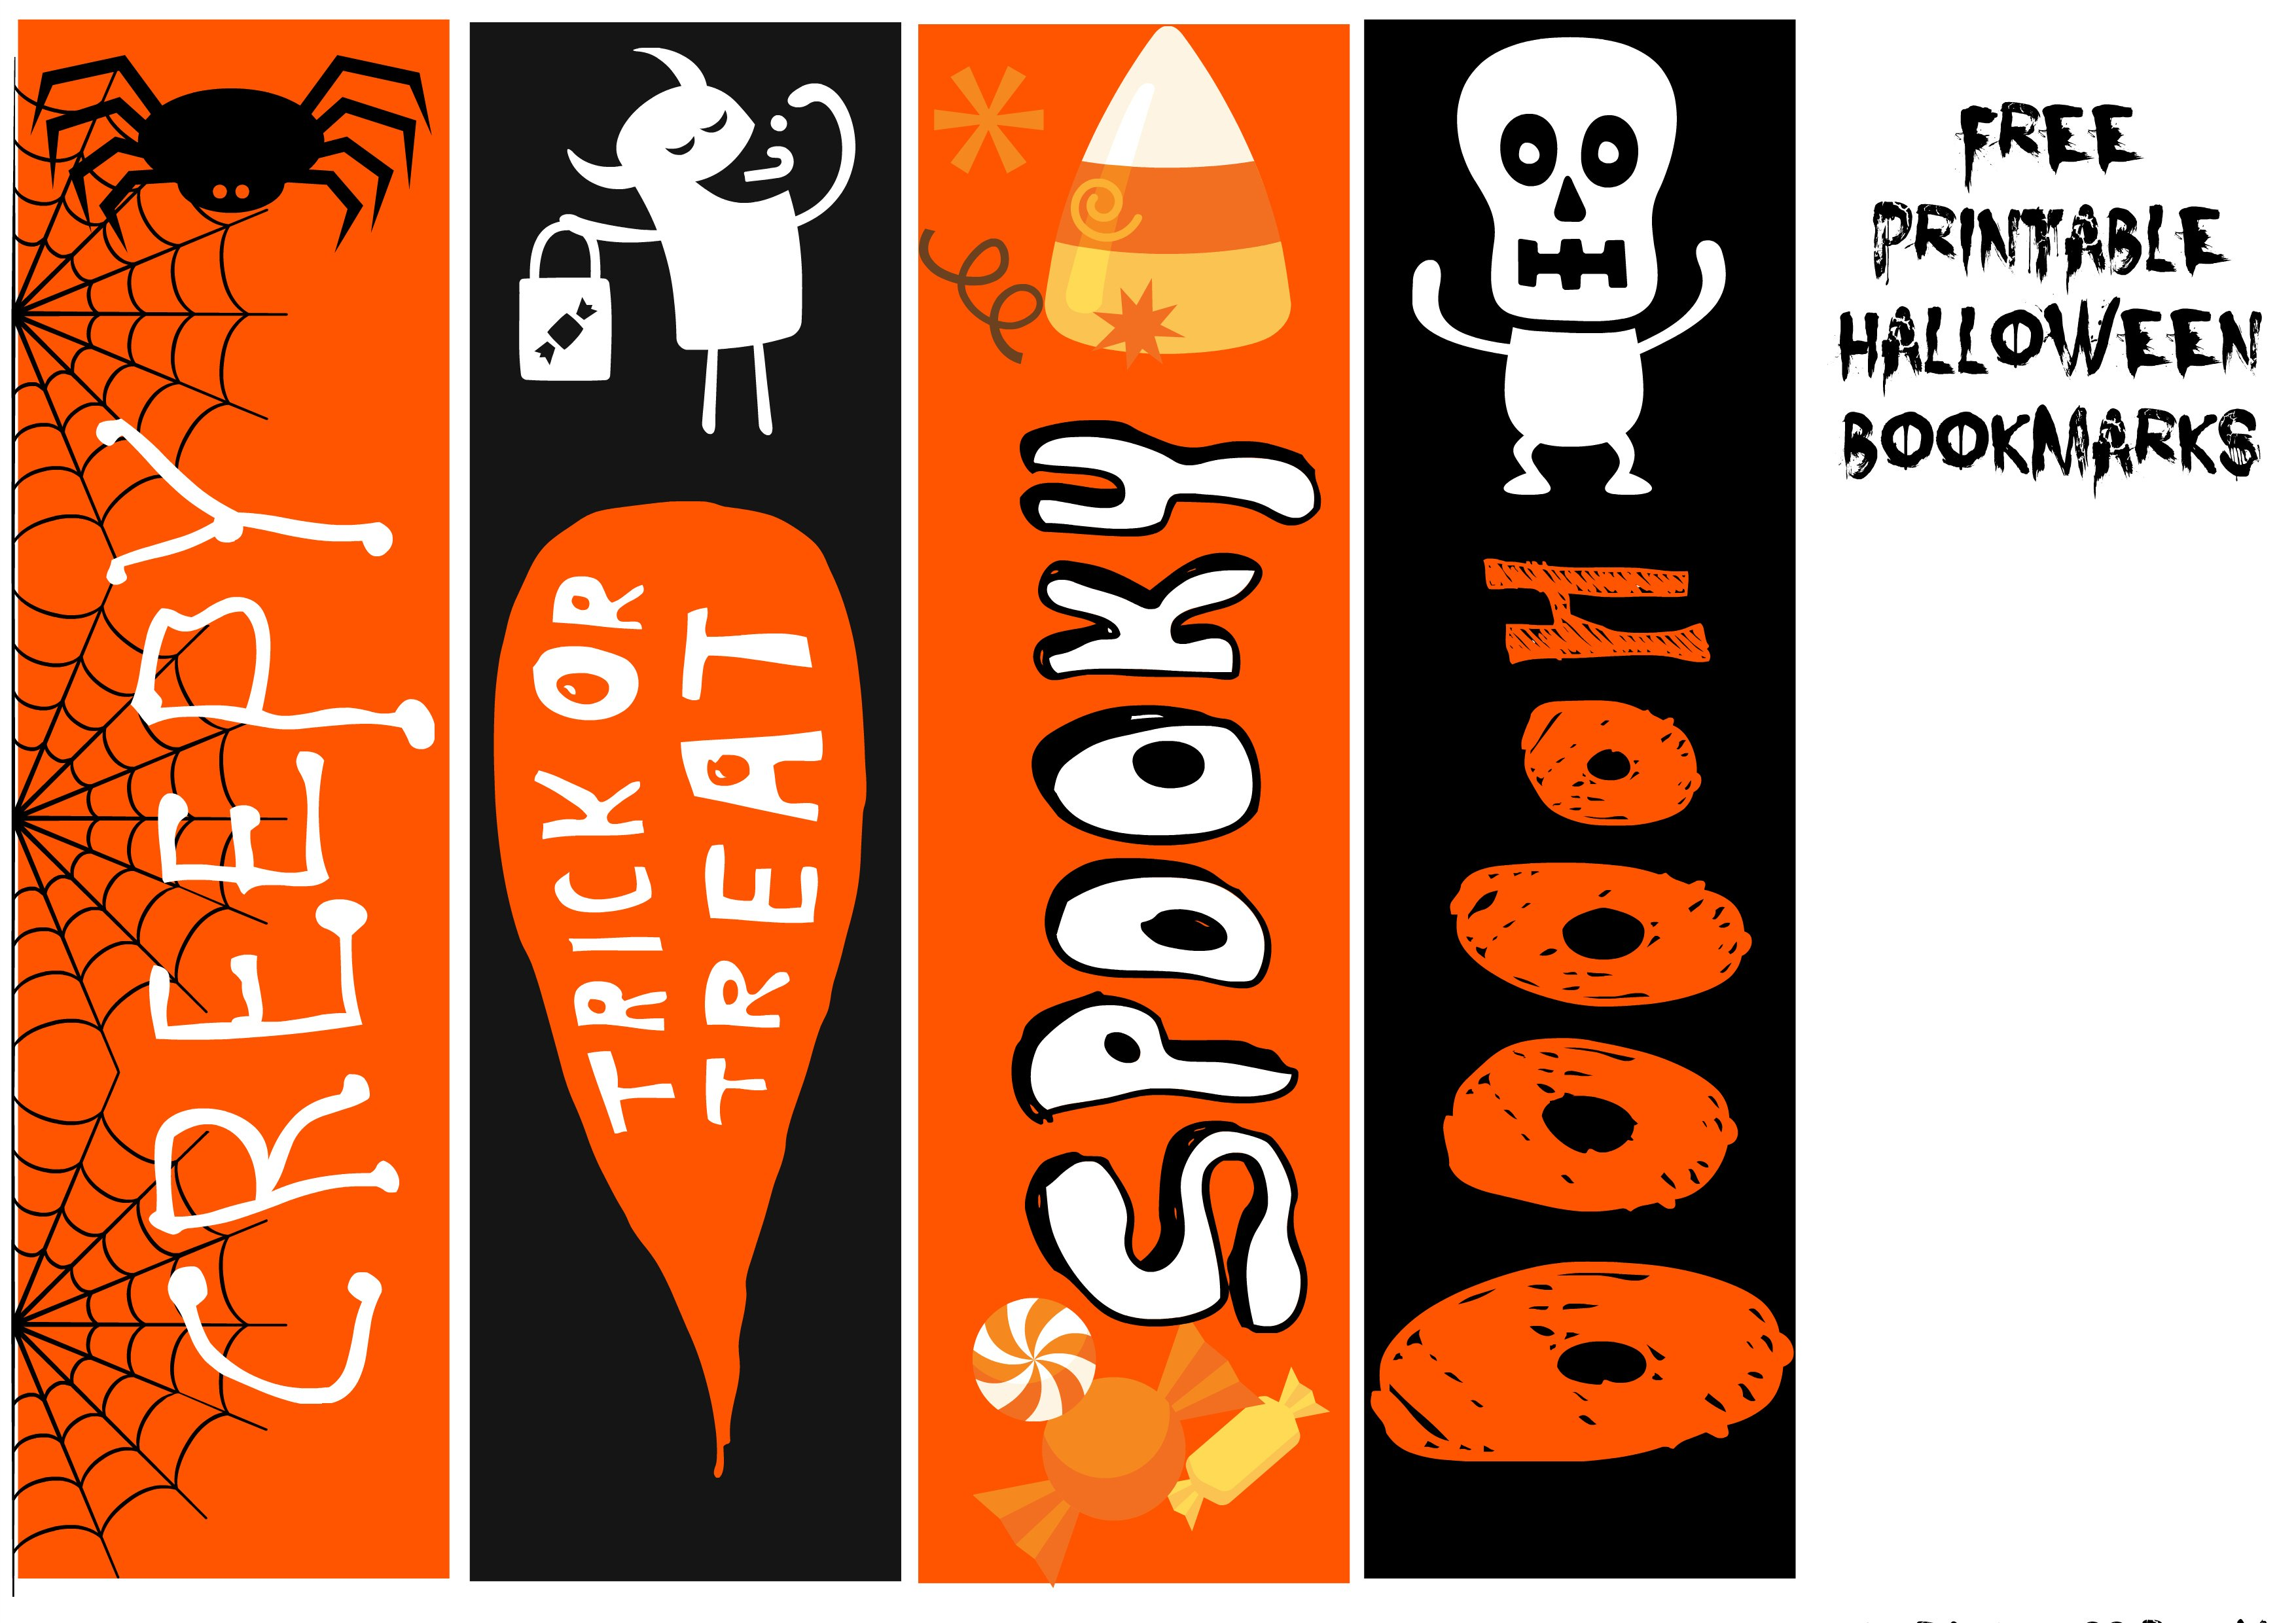 FREE Printable Halloween Bookmarks - Onion Rings & Things